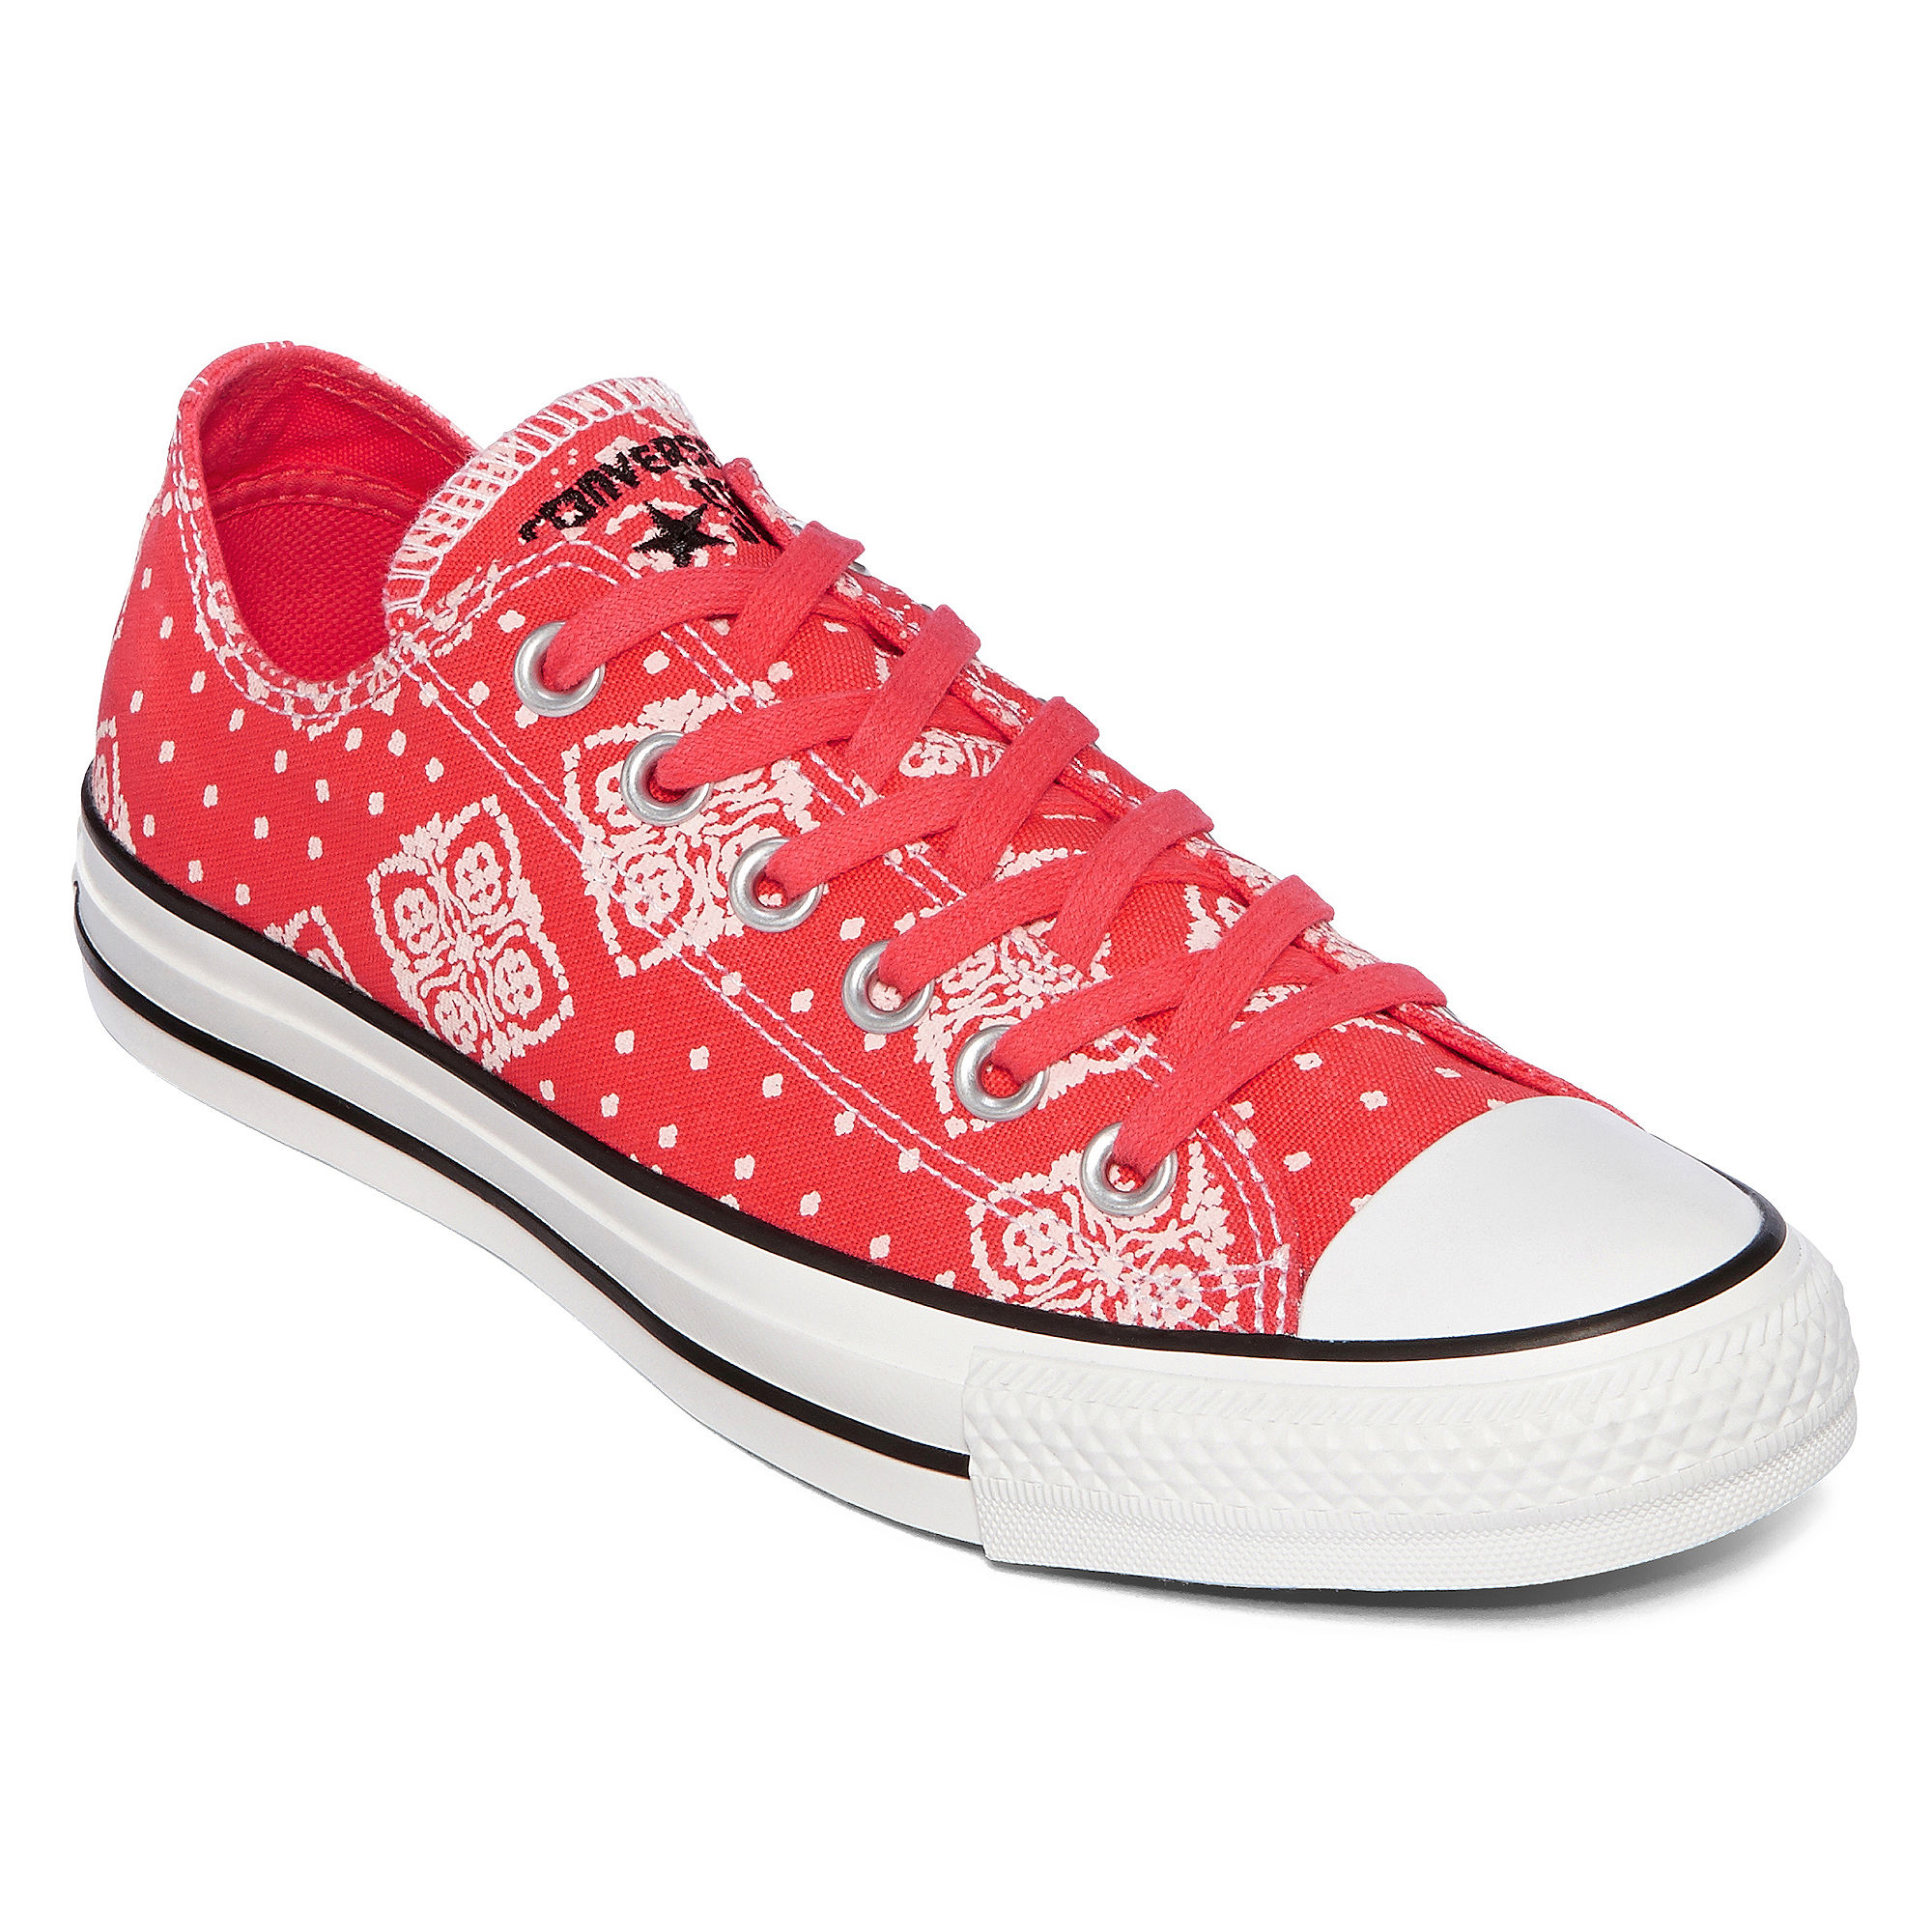 ... UPC 886955780019 product image for Converse Chuck Taylor All Star  Womens Ox Bandana Sneakers  8c0016def